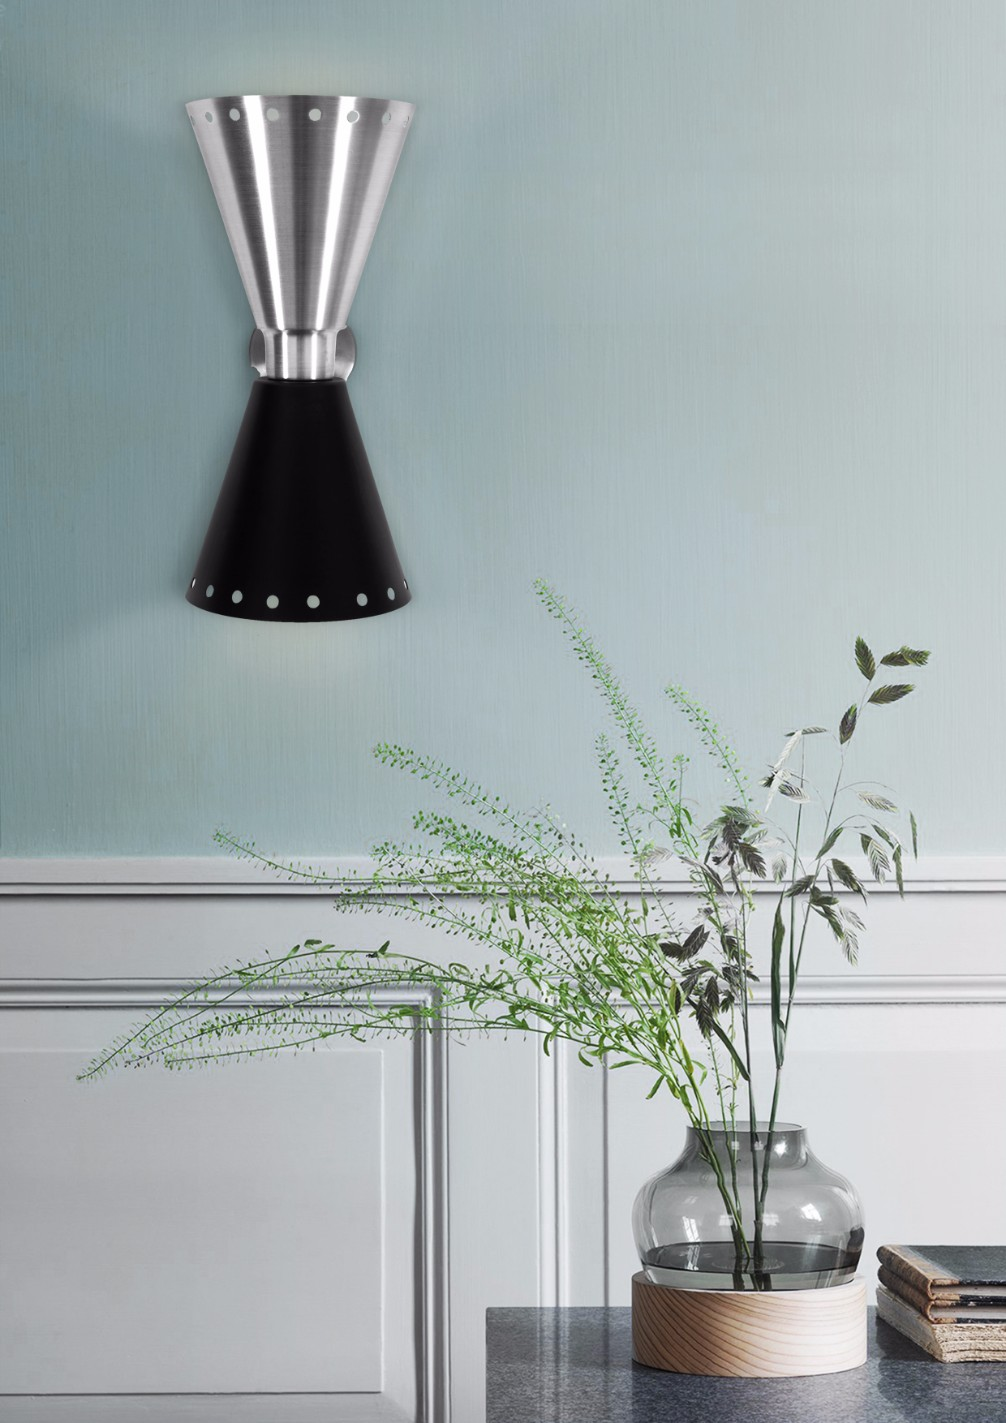 Summer Sales: Find The Best Lamps For You Home Décor!